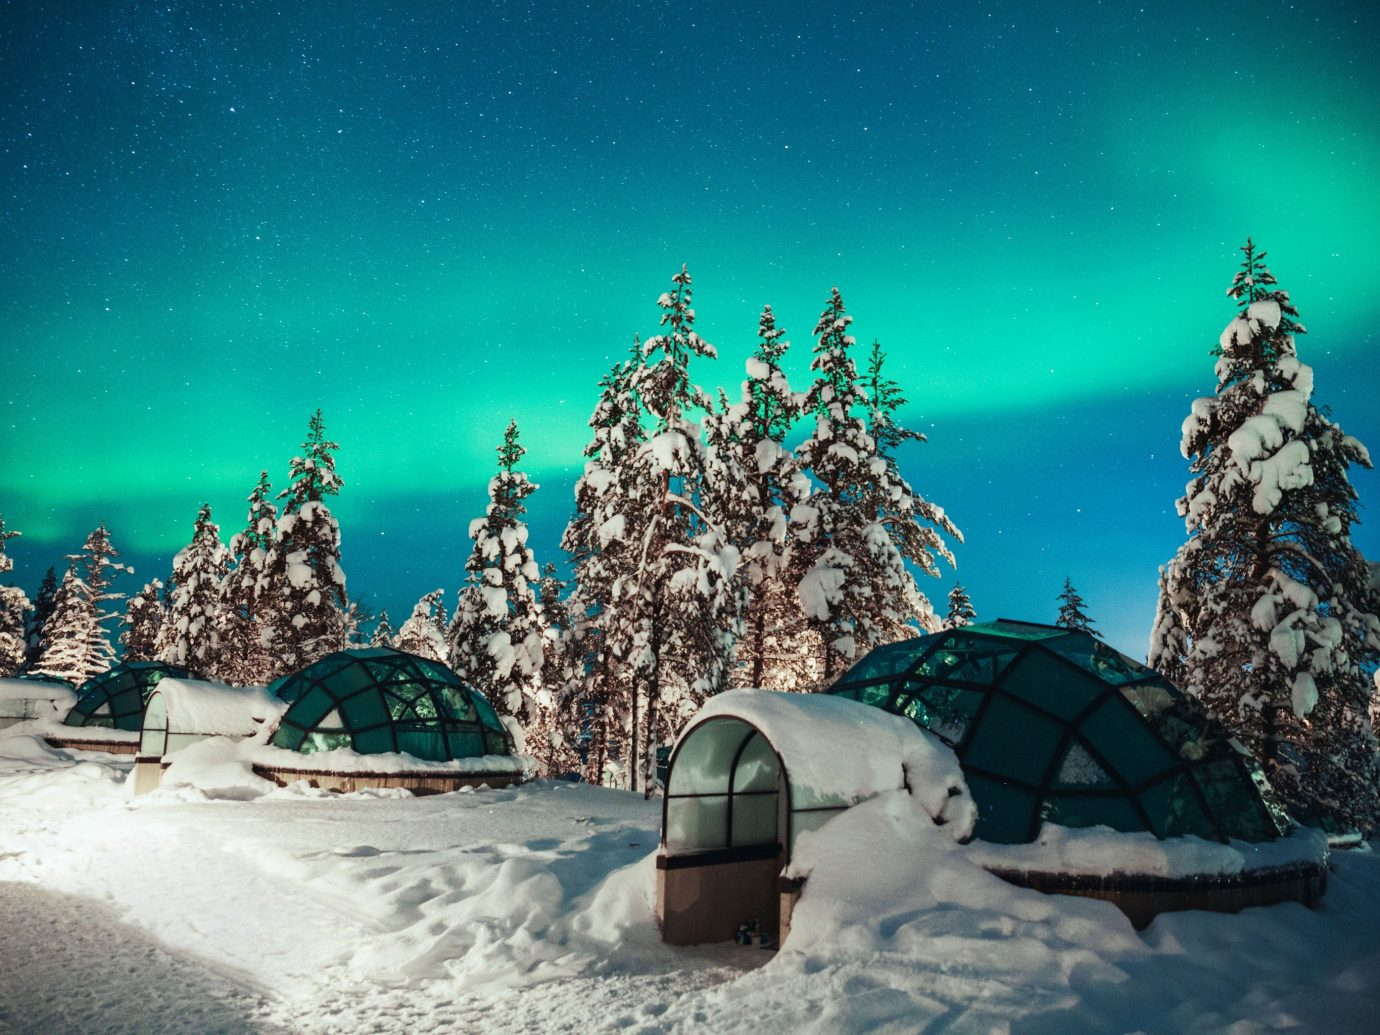 Trip Ideas outdoor Winter snow night screenshot world aurora